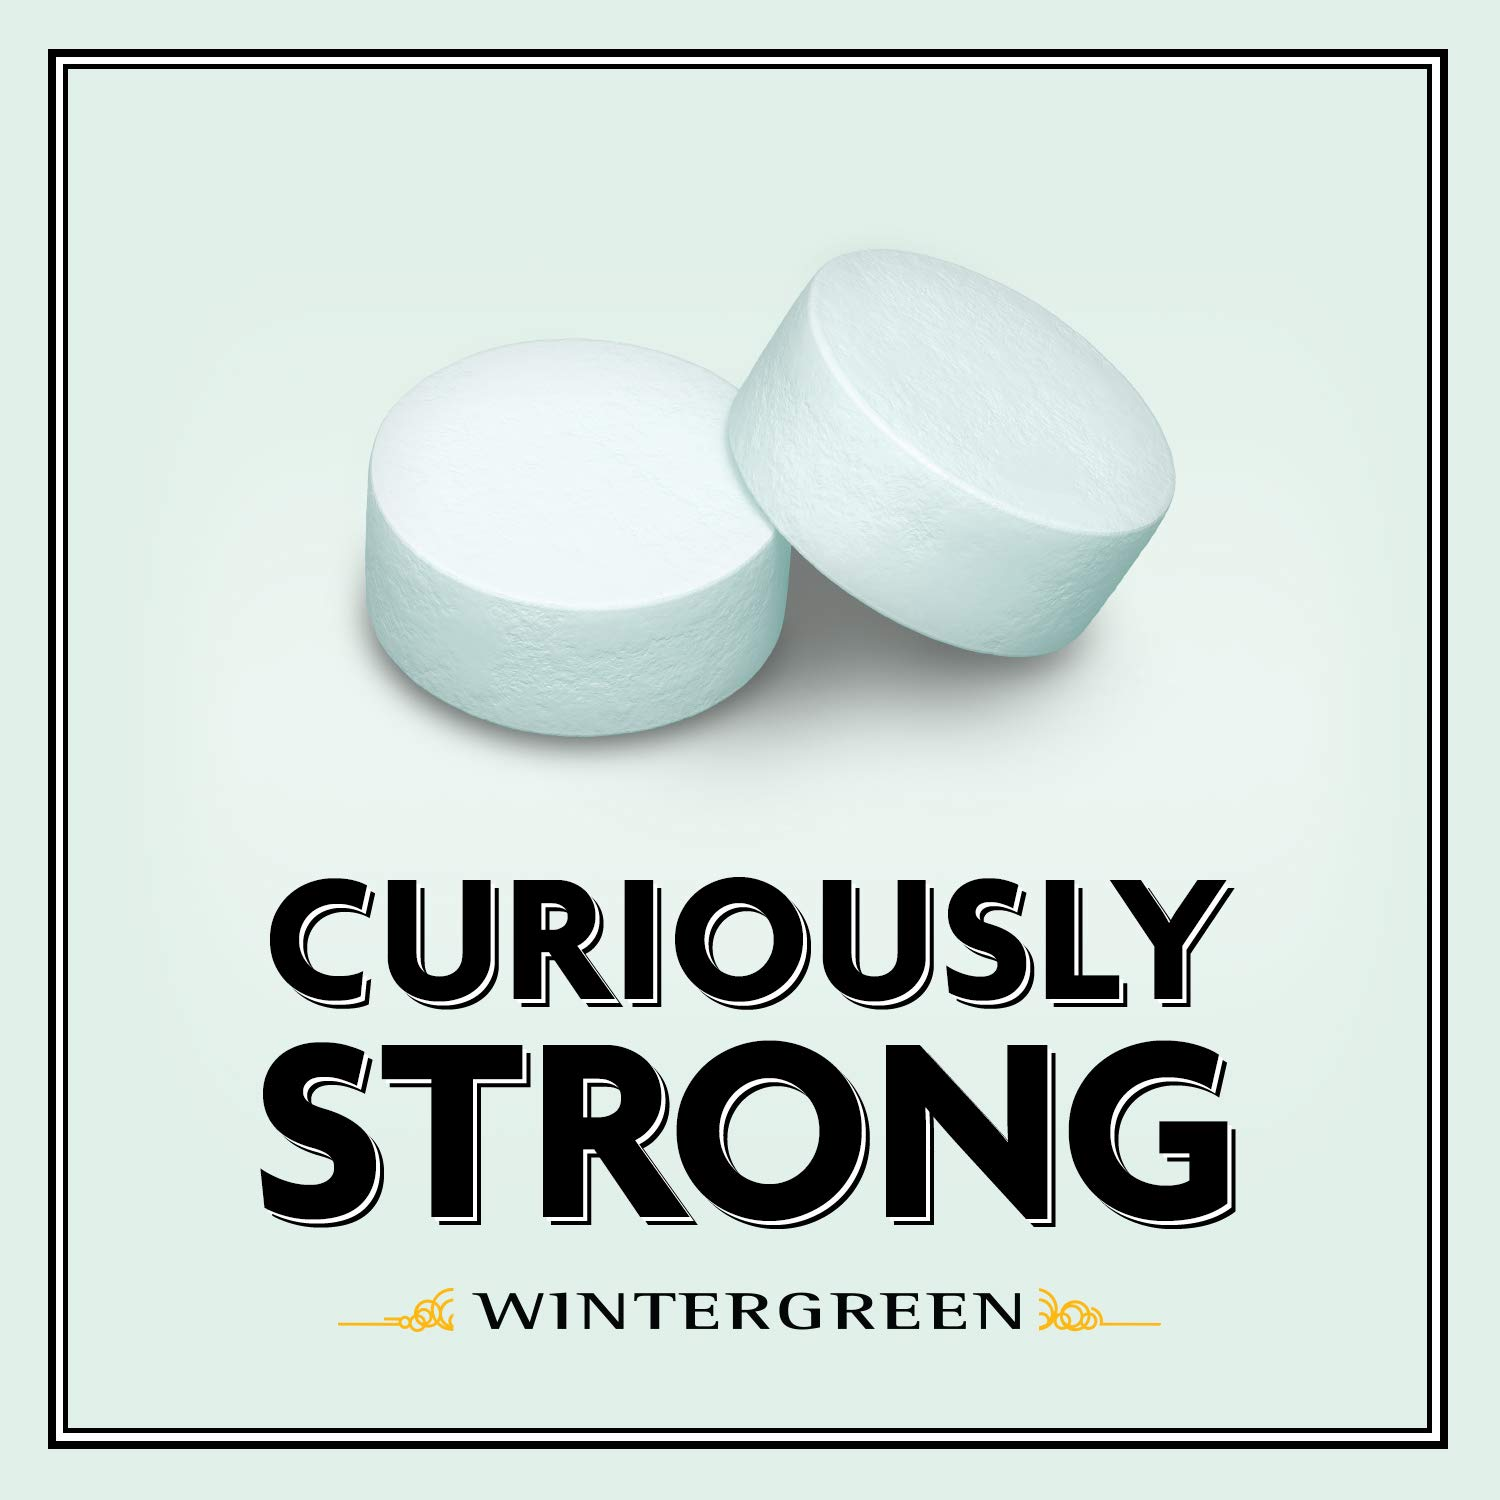 ALTOIDS Classic Wintergreen Breath Mints, 1.76-Ounce Tin (Pack of 12) by Altoids (Image #6)